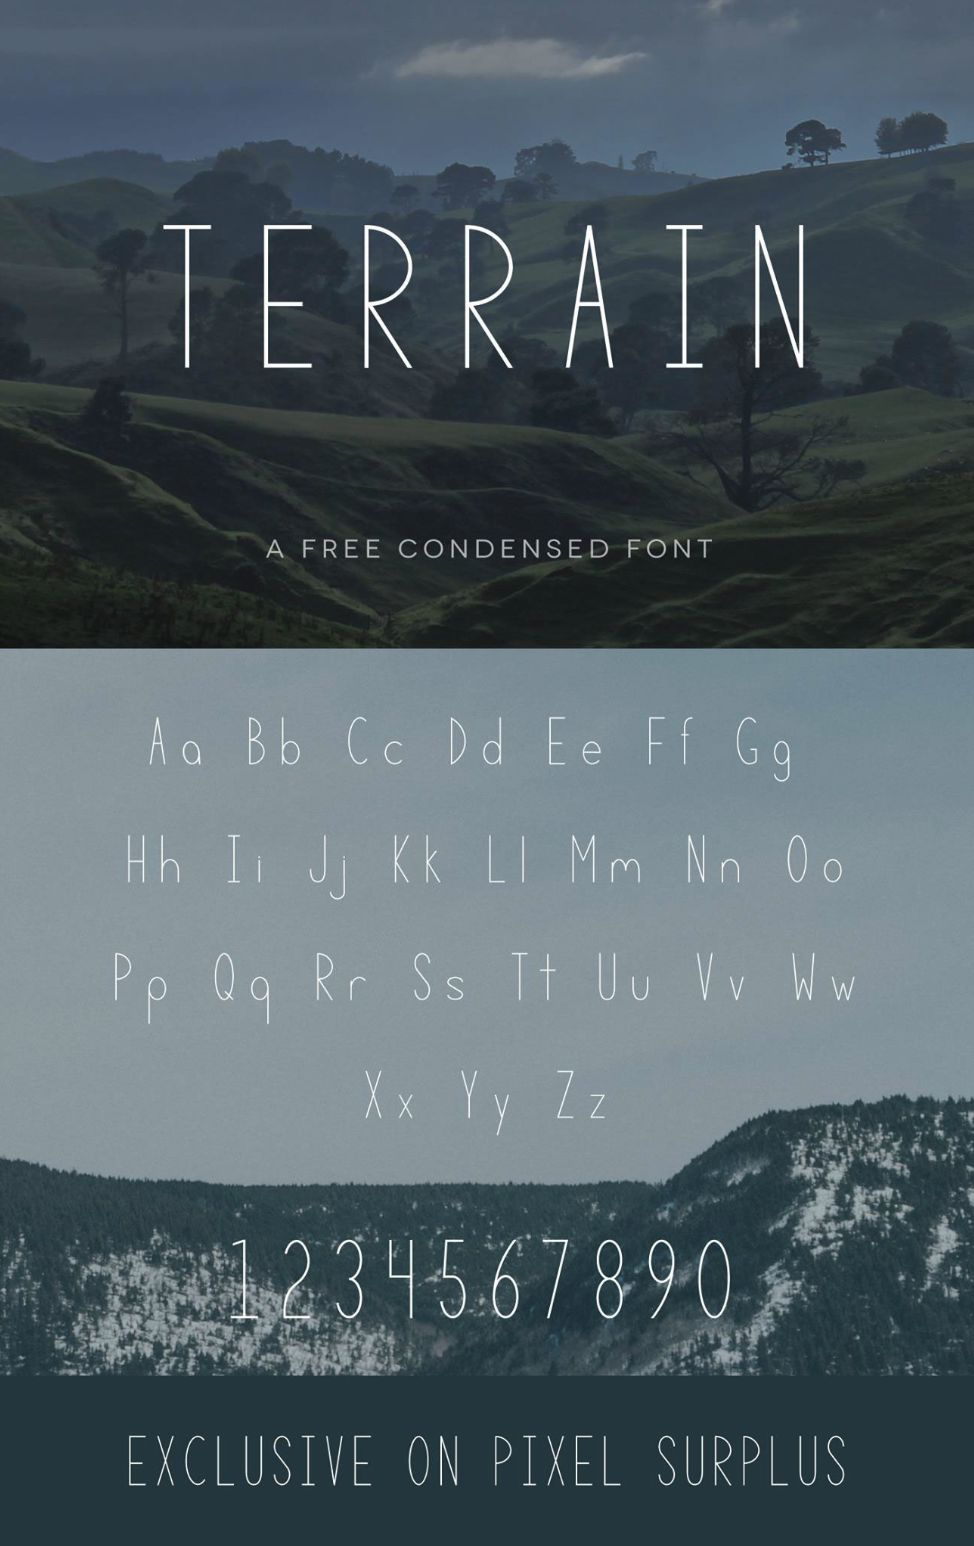 TERRAIN - FREE FONT on Behance